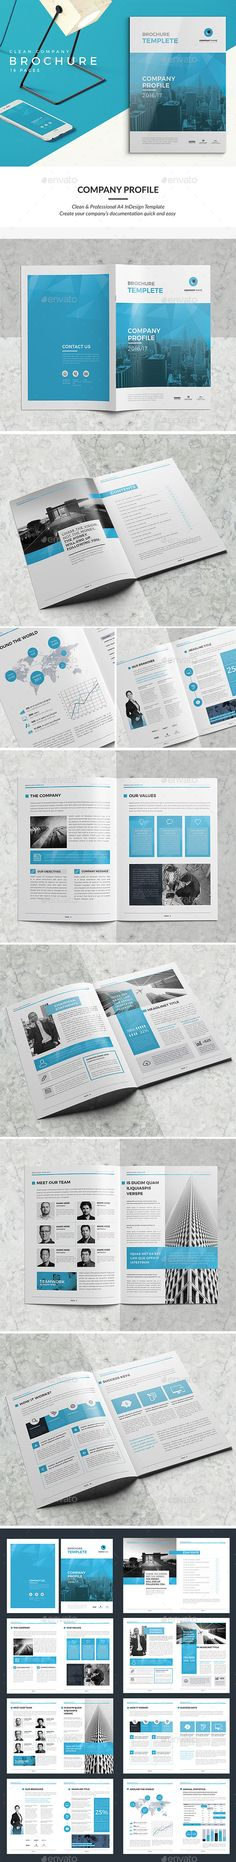 Clean Company Profile Design Template - Corporate Brochures Design Template InDesign INDD. Download here: https://graphicriver.net/item/clean-company-profile/19260885?ref=yinkira